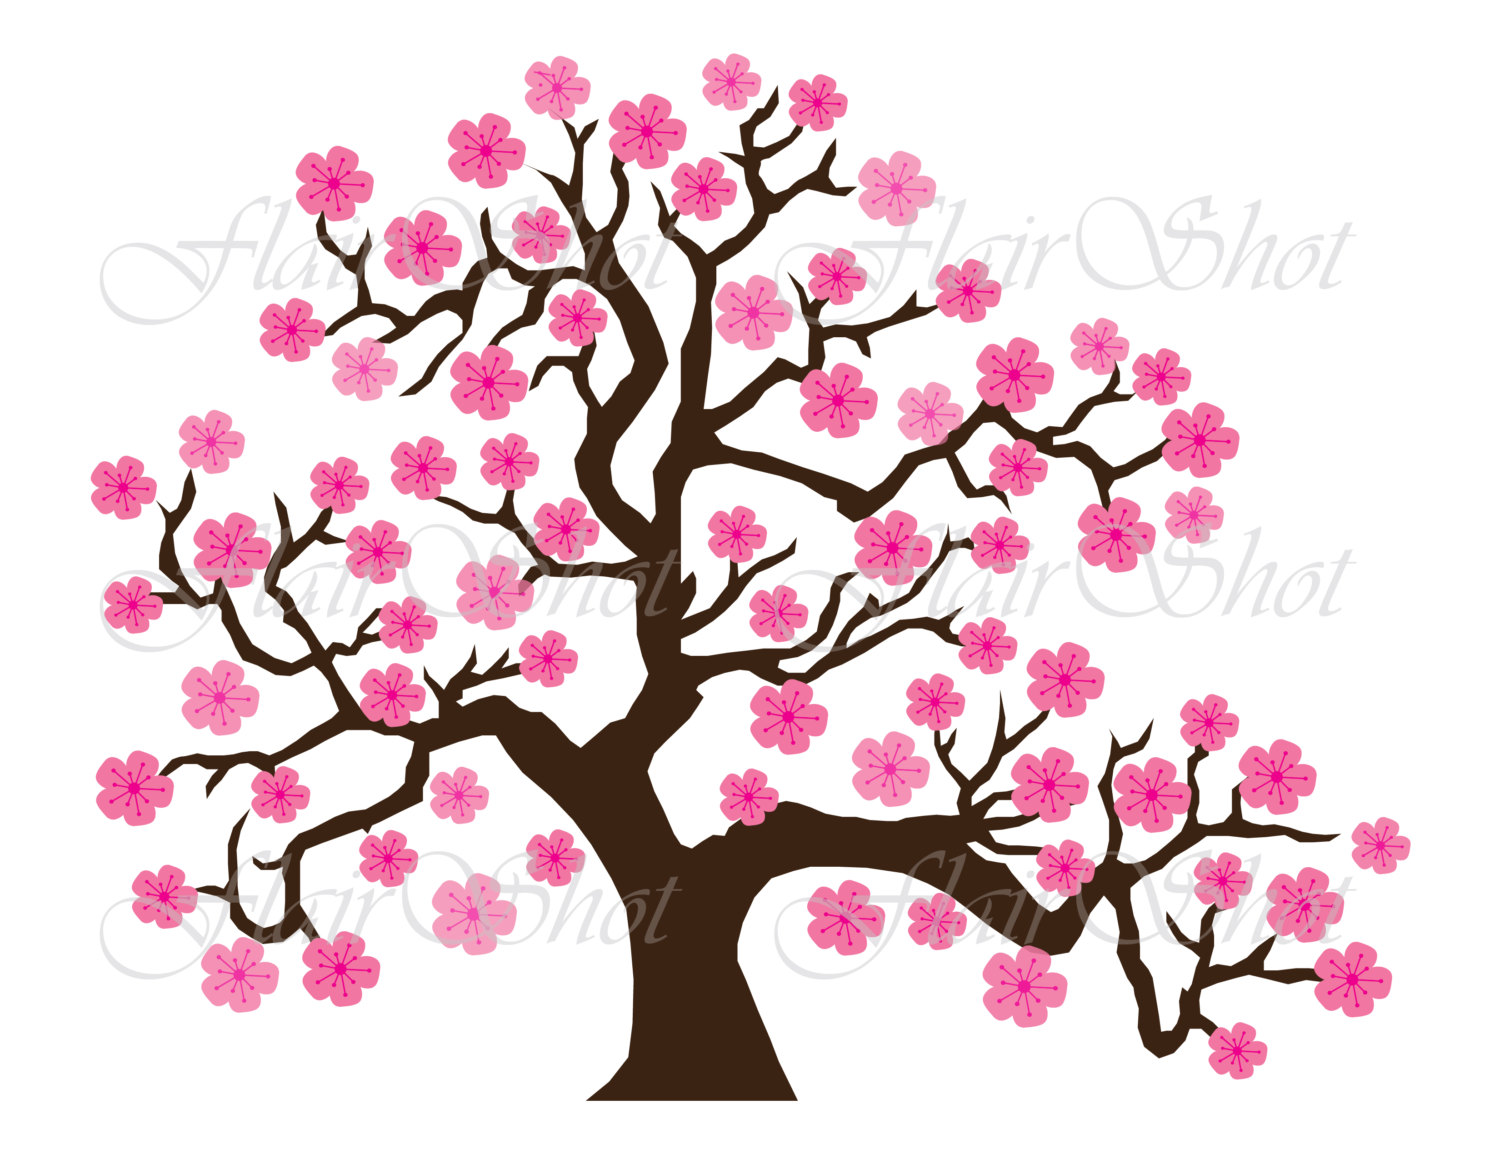 Japanese cherry blossoms clipart #11